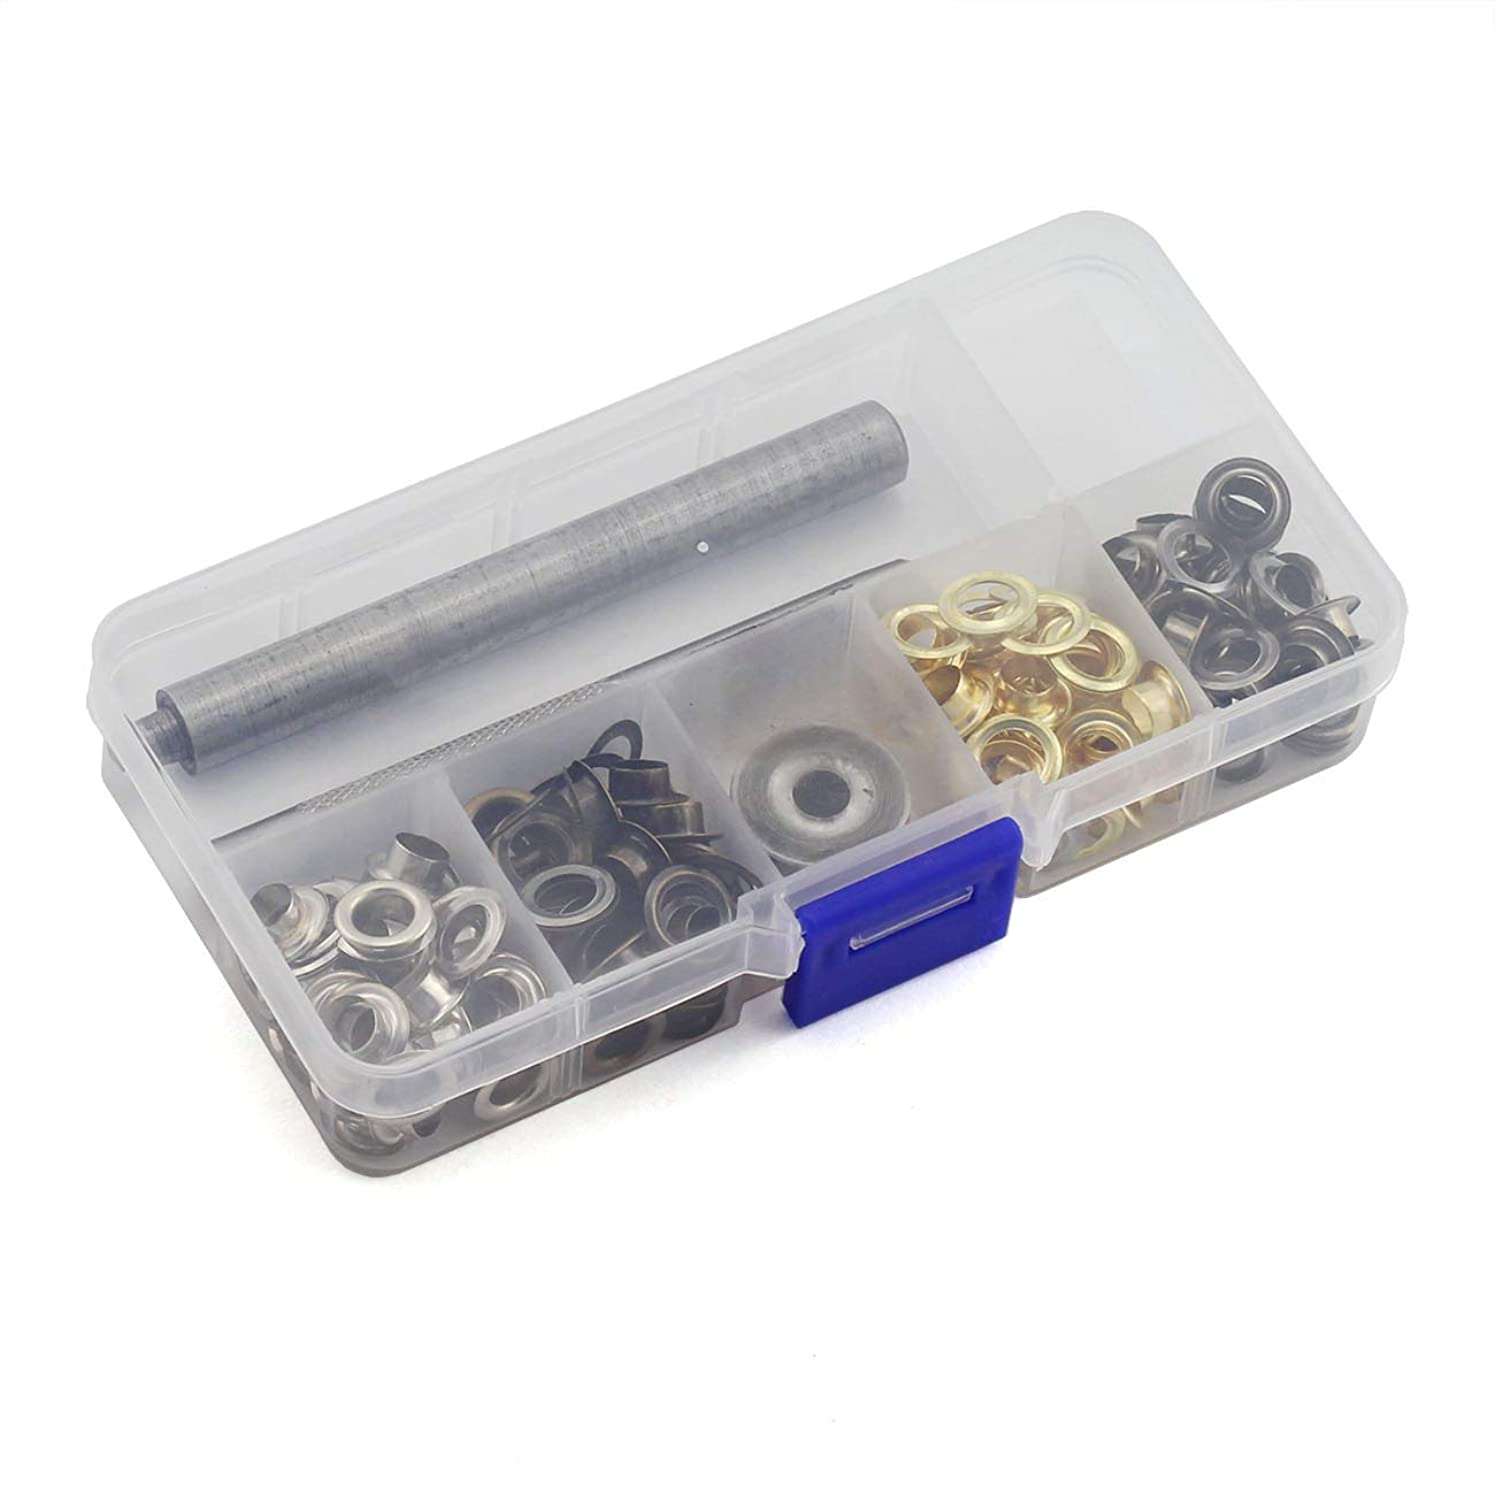 PZRT 120 Sets Eyelets and Grommets with 1 Set Hand Knocking Tools for Clothes, Shoes, Belts, Bags and Other Home Textiles Uses